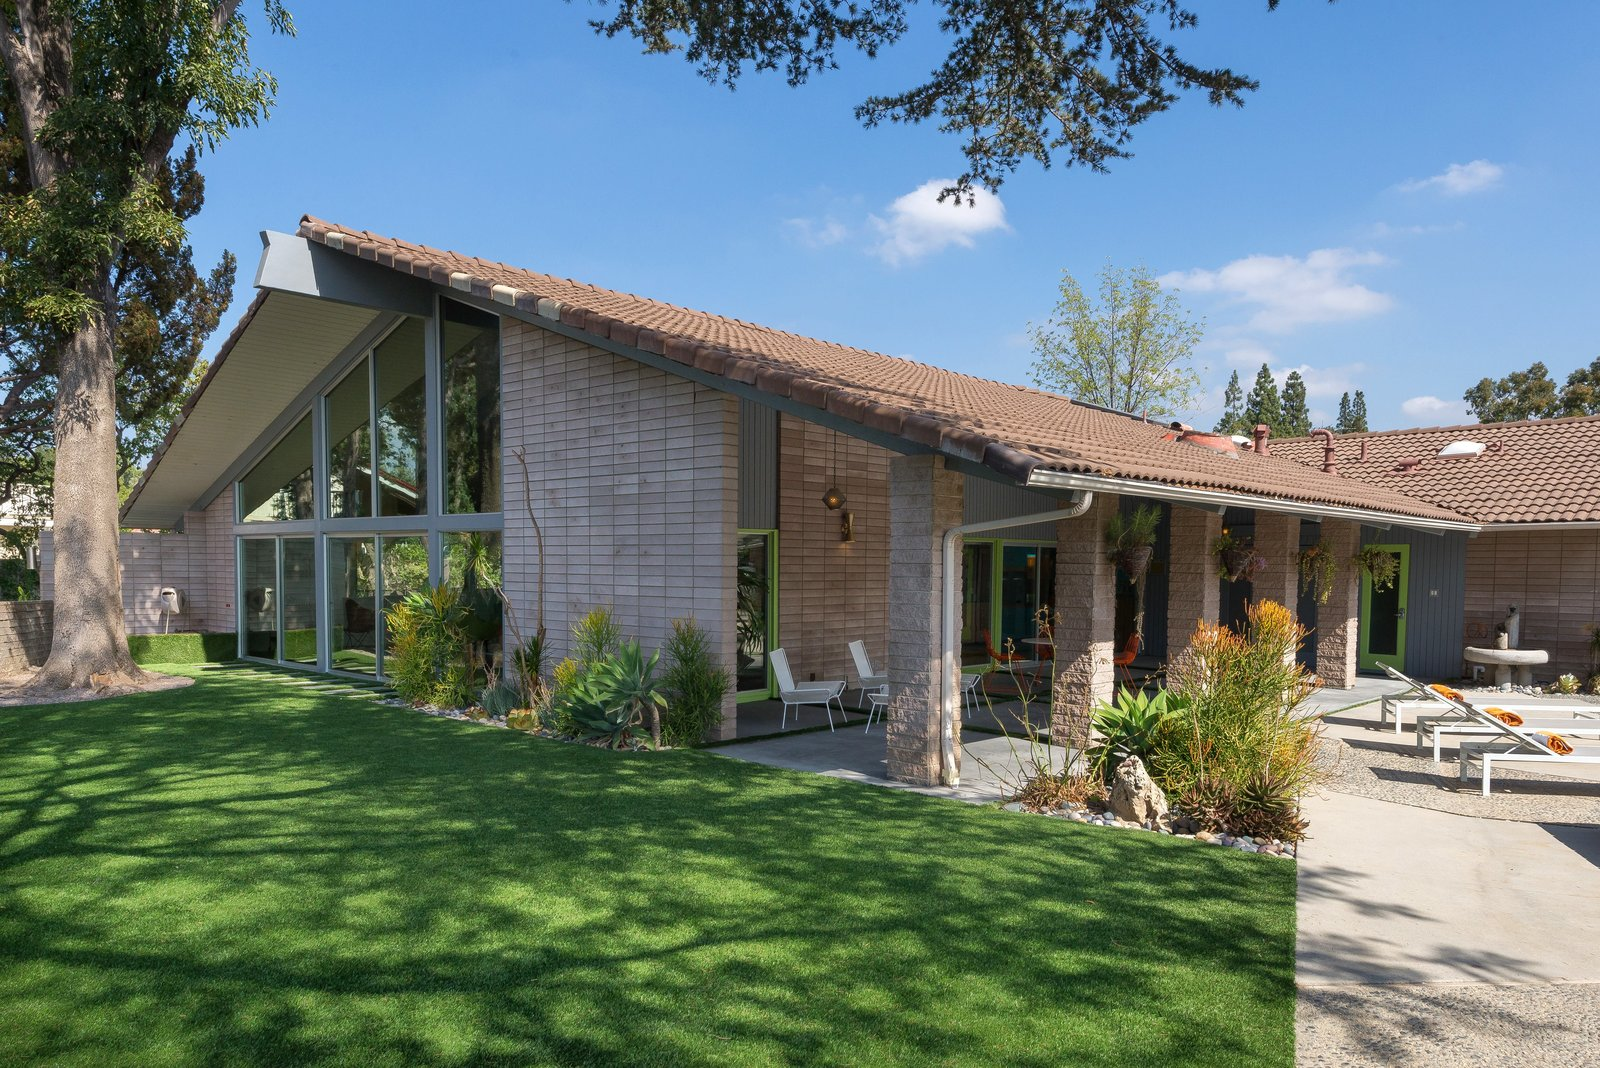 Exterior, House, Mid-Century, Brick, Gable, Glass, and Shingles The outdoor space has been landscaped with synthetic turf, as well as drought-tolerant plants.    Best Exterior Shingles Glass Brick Photos from Step Back in Time in This Midcentury Now Asking $1.4M